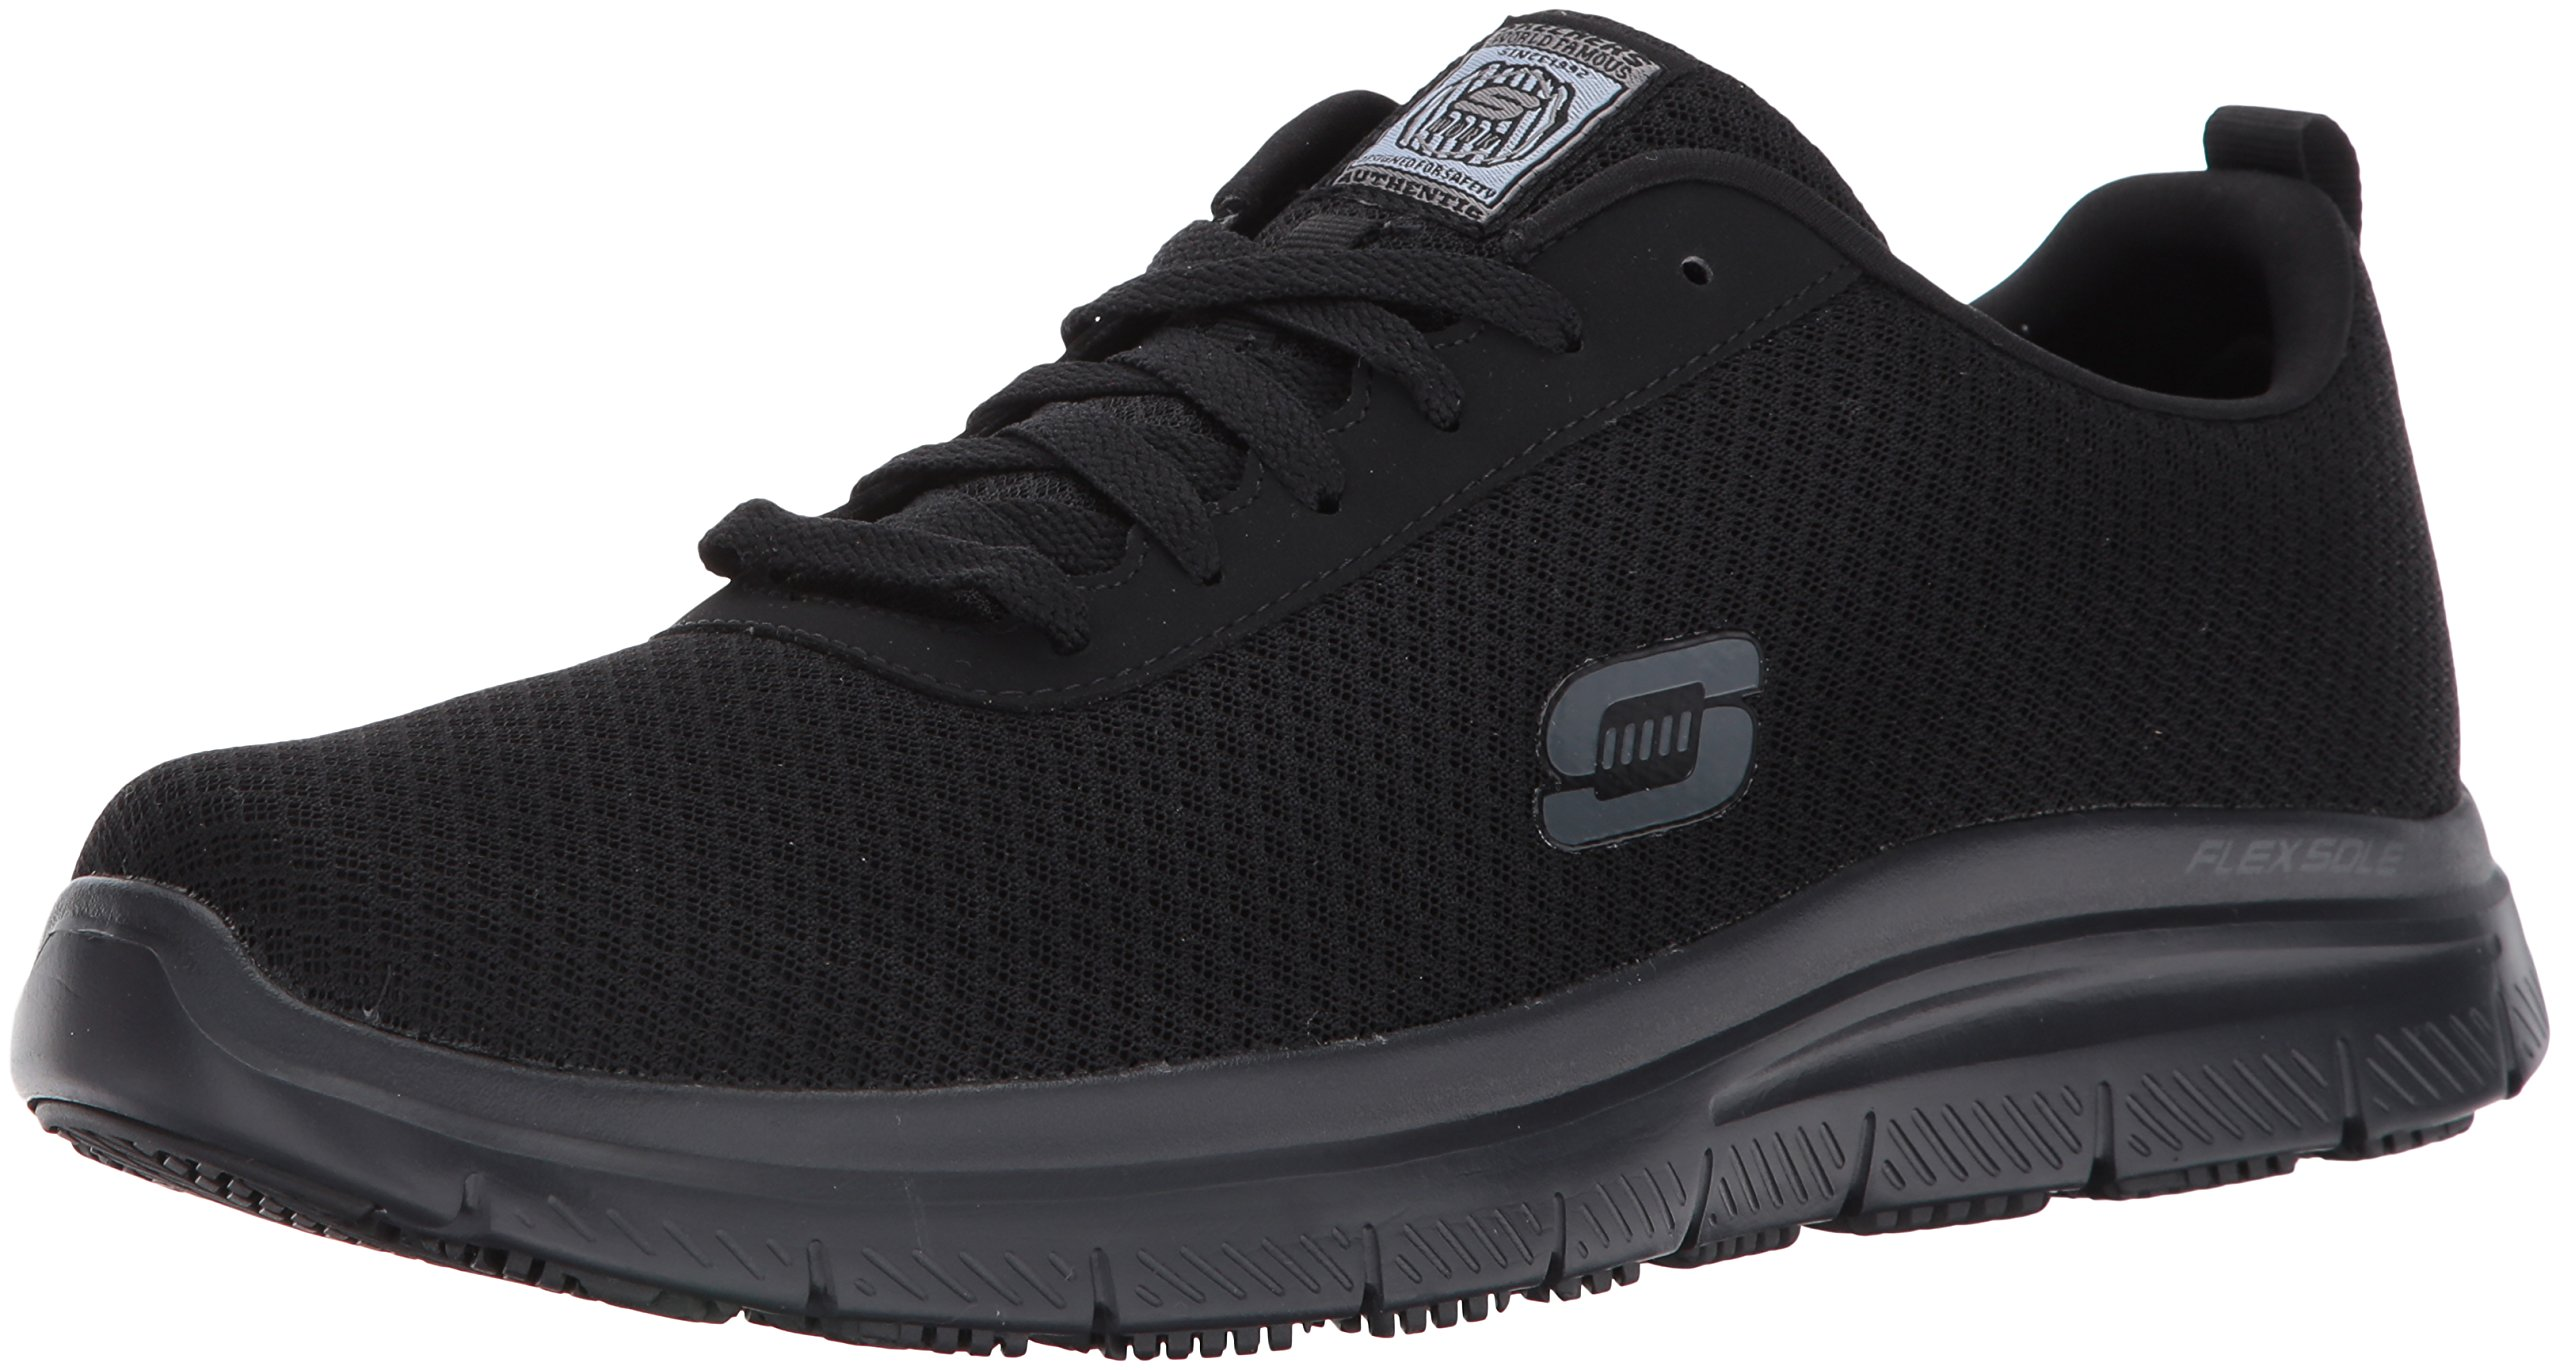 Skechers for Work Men's Flex Advantage Bendon Work Shoe, Black, 7.5 D(M) US